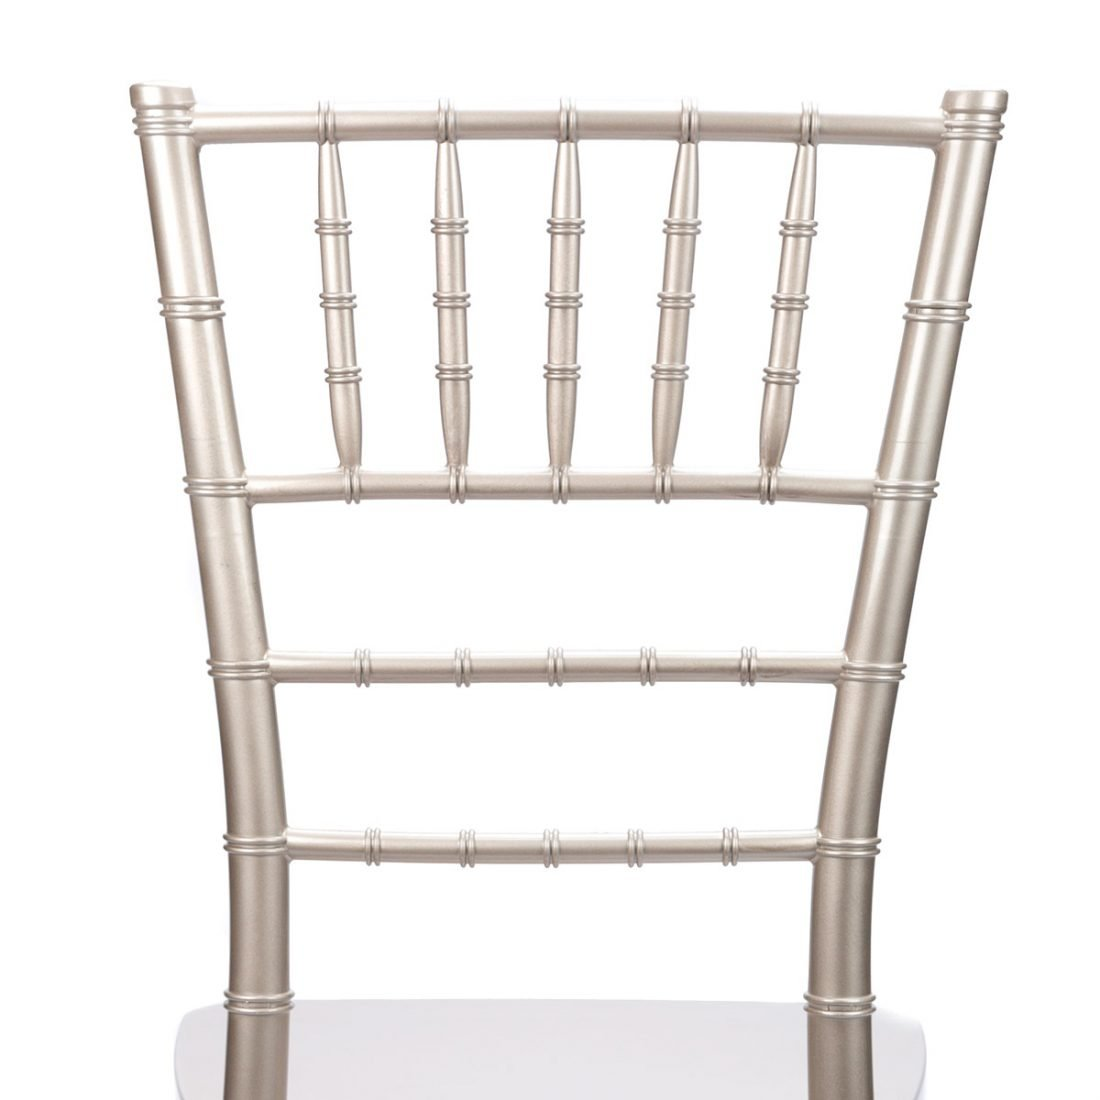 The Chiavari Chair Company